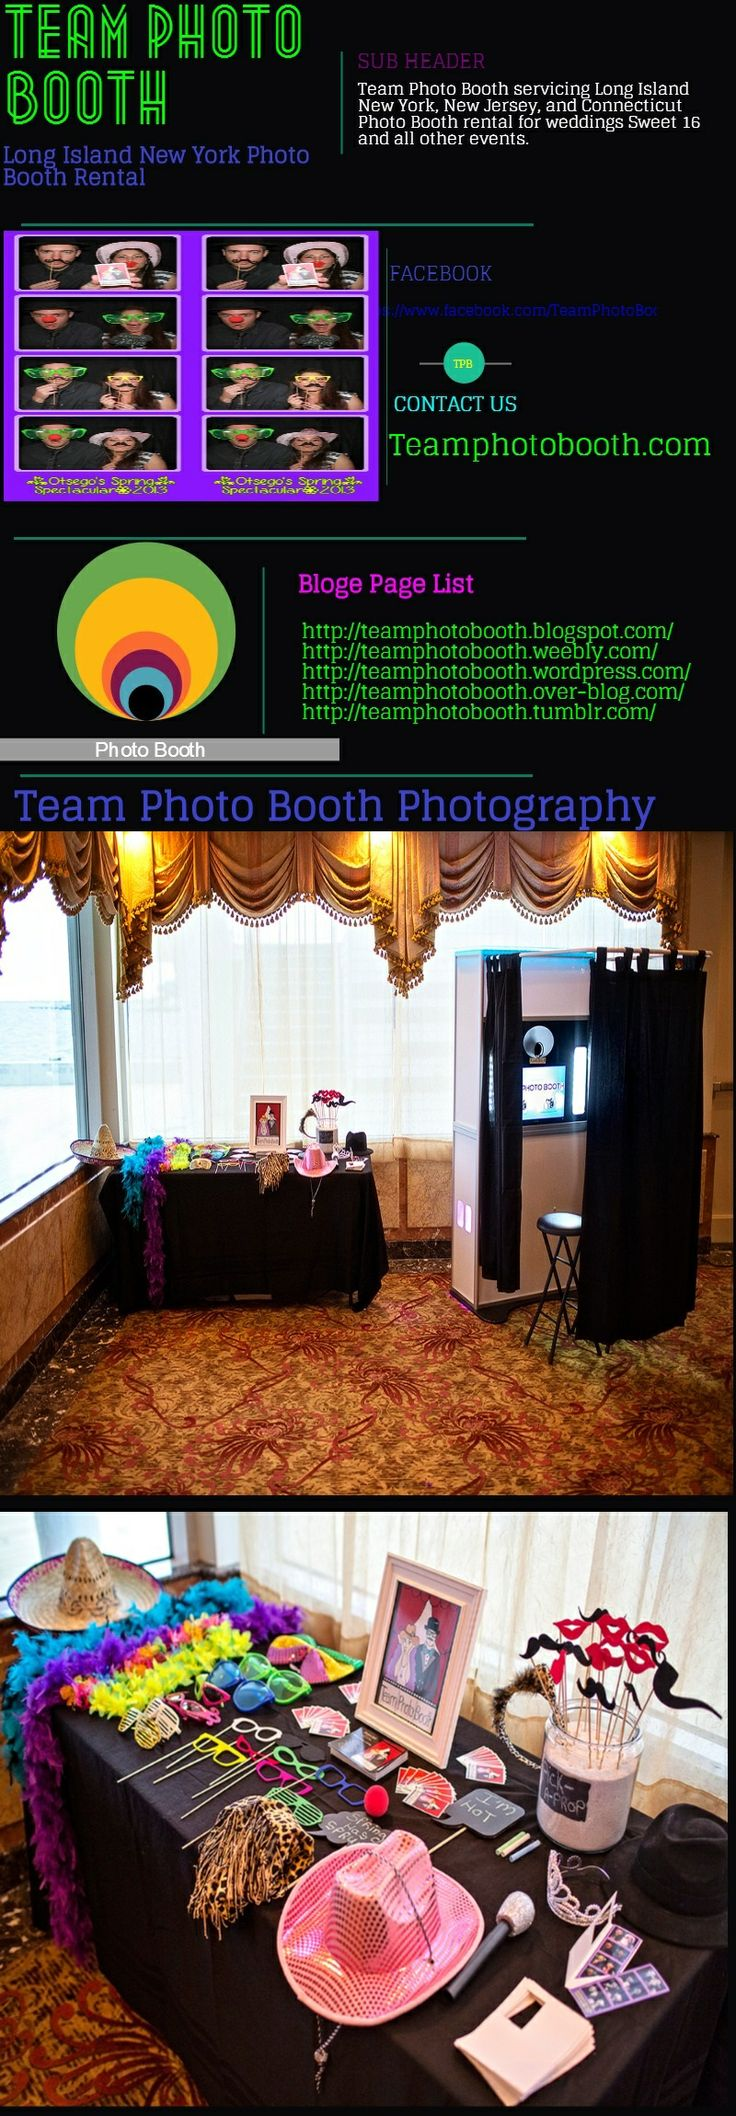 Photo Booth Rentals Pricing and Packages - TeamPhotoBooth.com